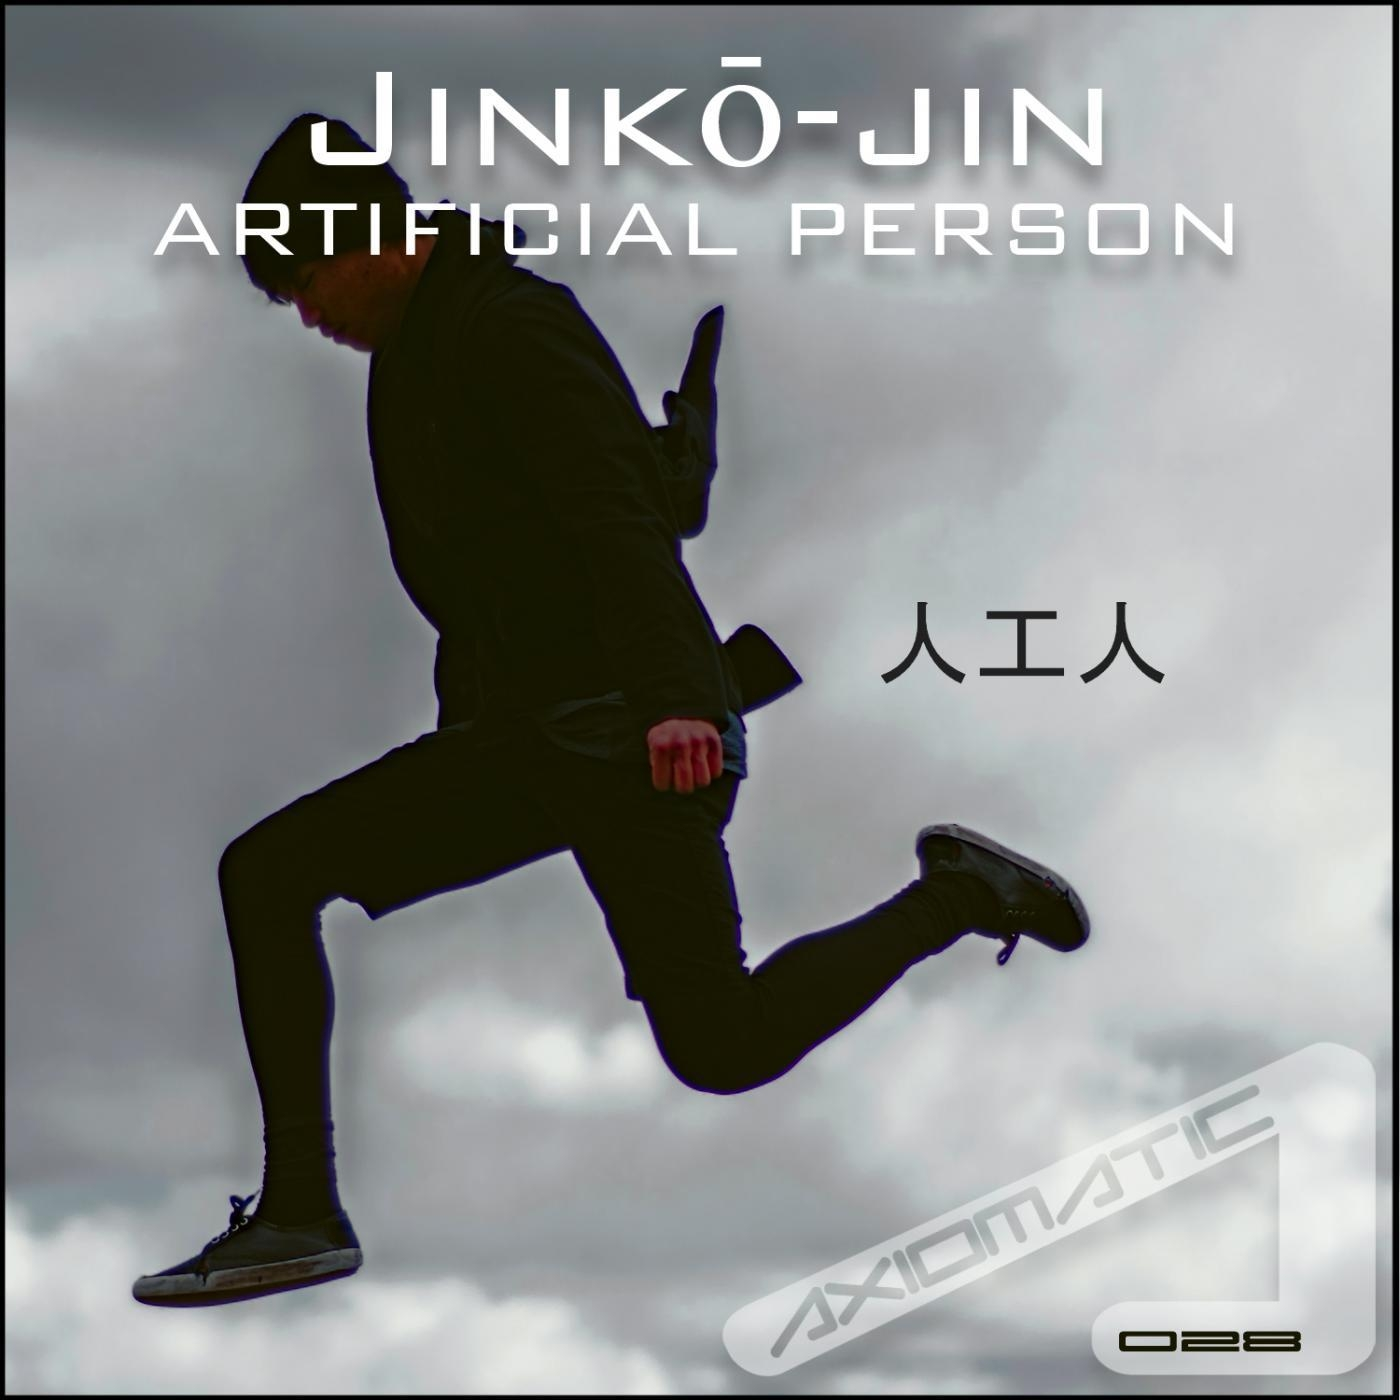 Jinko-Jin - Artificial Person (Original mix)